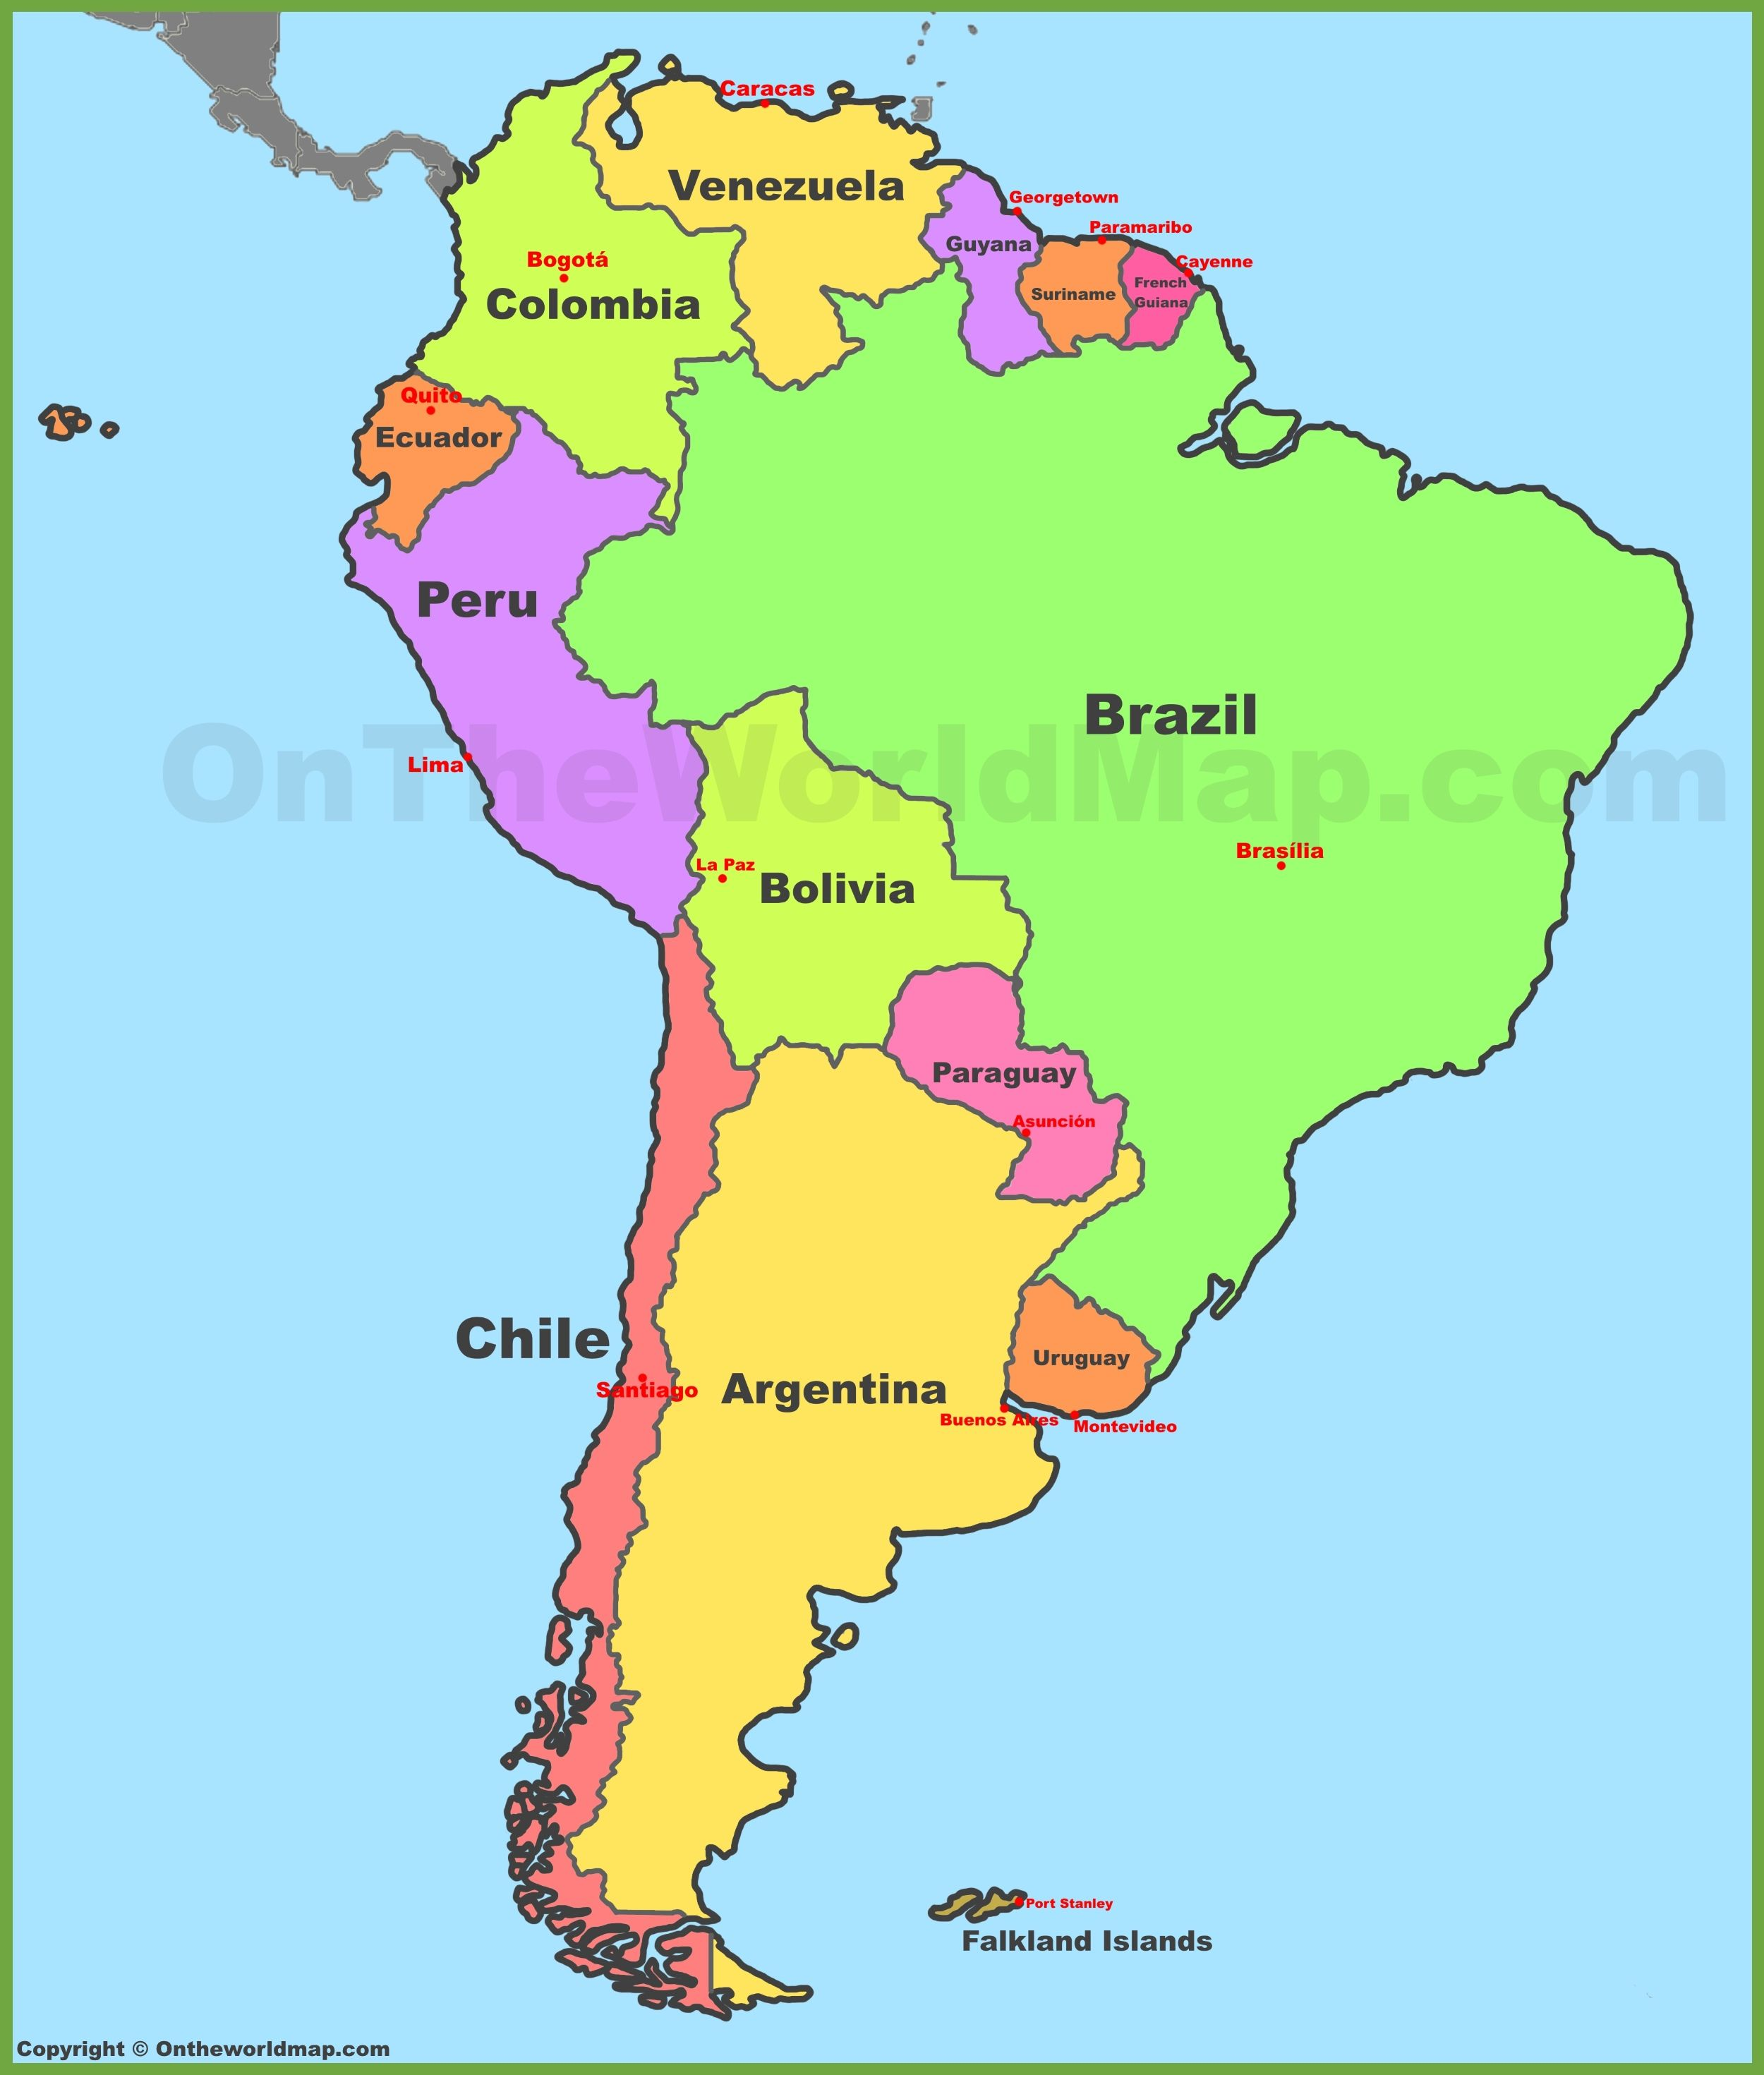 Countries In South America Map Map of South America with countries and capitals | South america